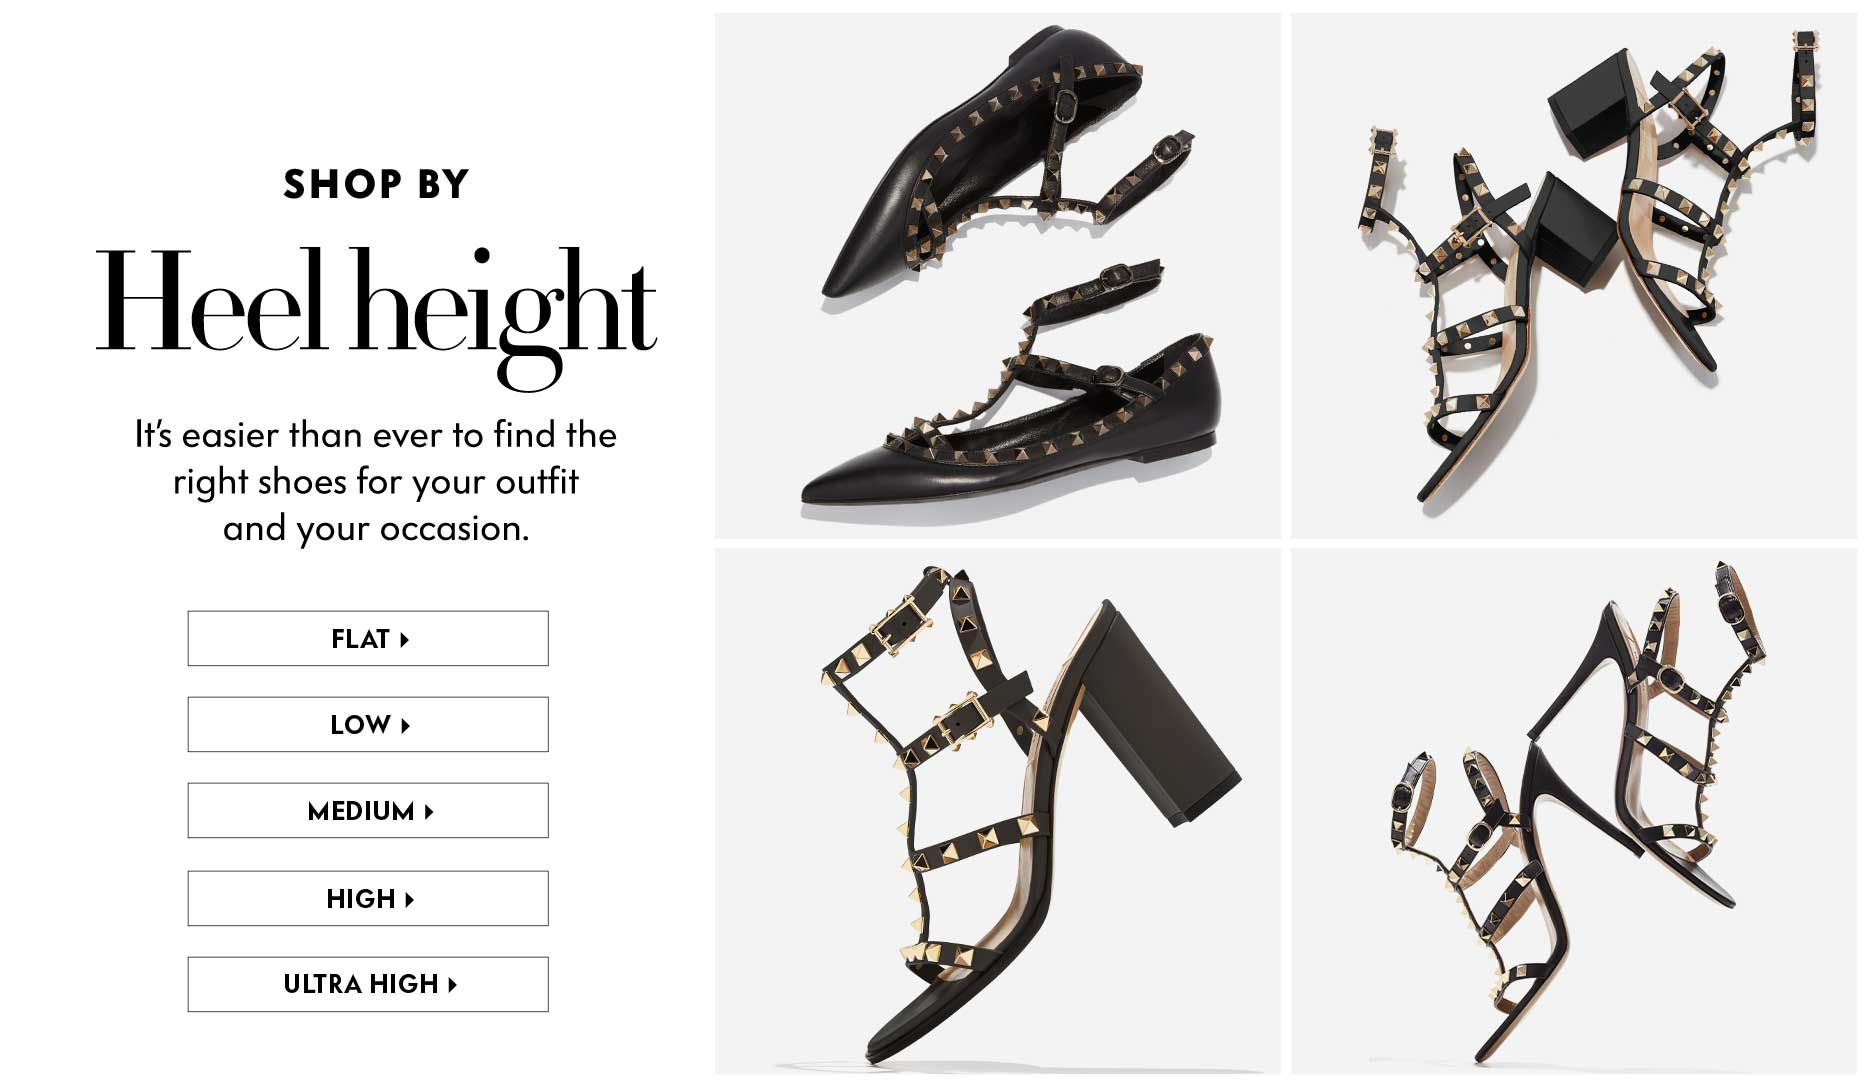 Shop By Heel Height: It's easier than ever to find the right shoes for your outfit and your occasion.